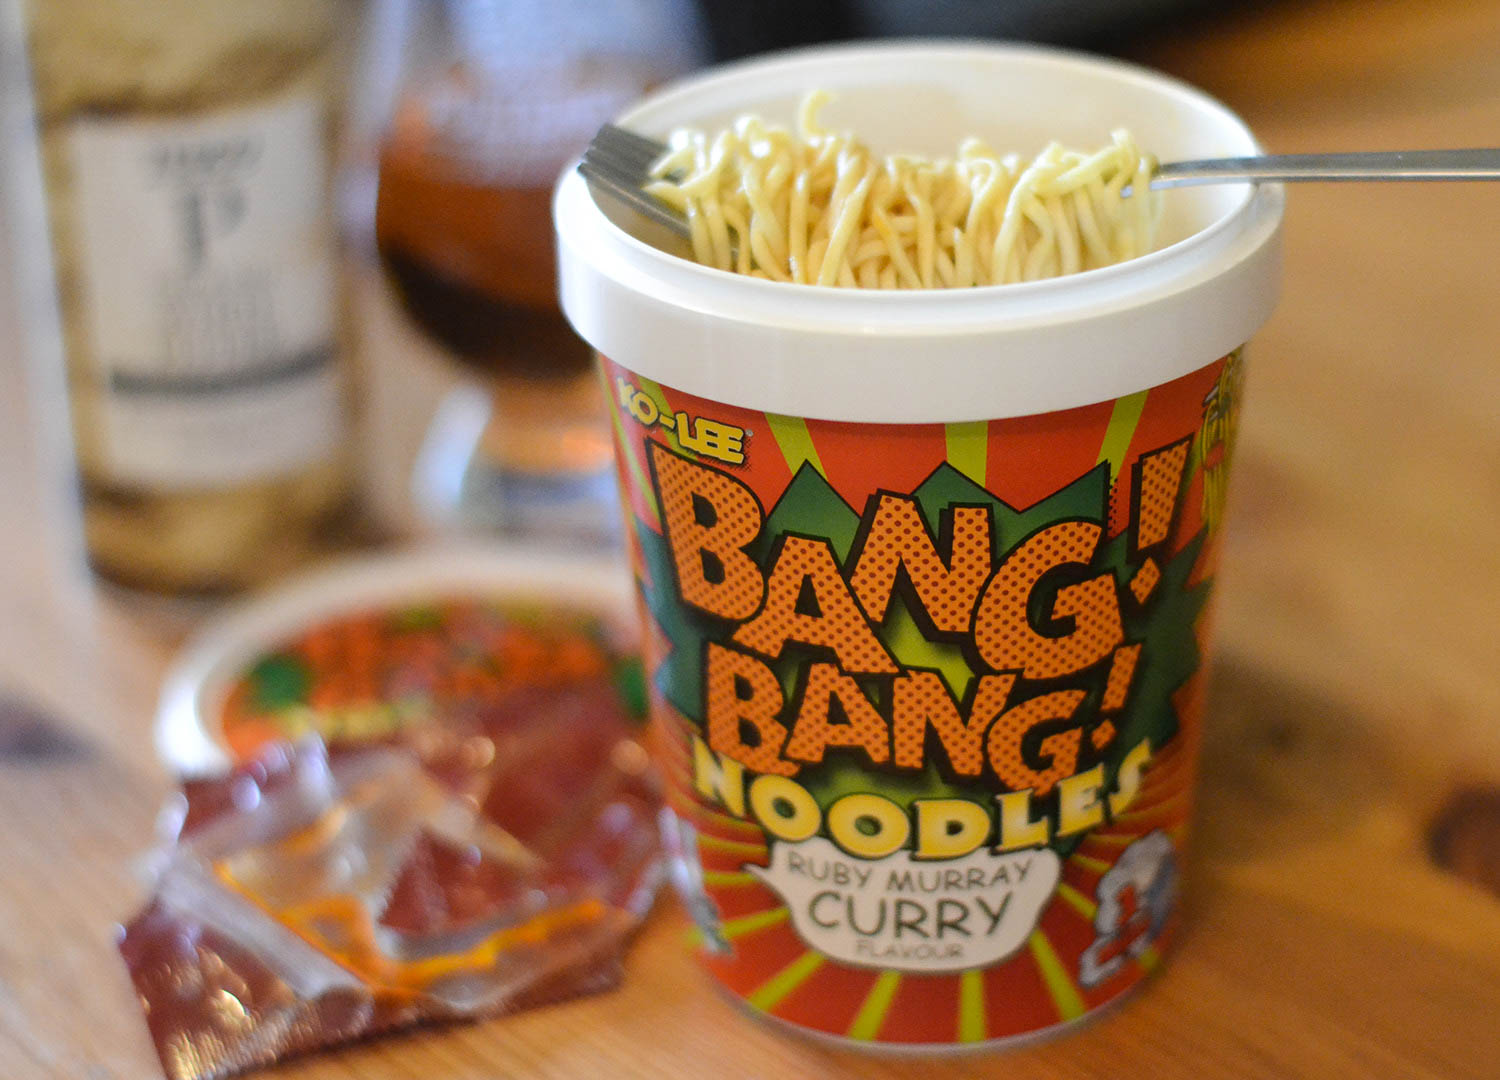 Ko-Lee Ruby Murray Curry Pot Noodle Instant Noodles in UK Supermarkets